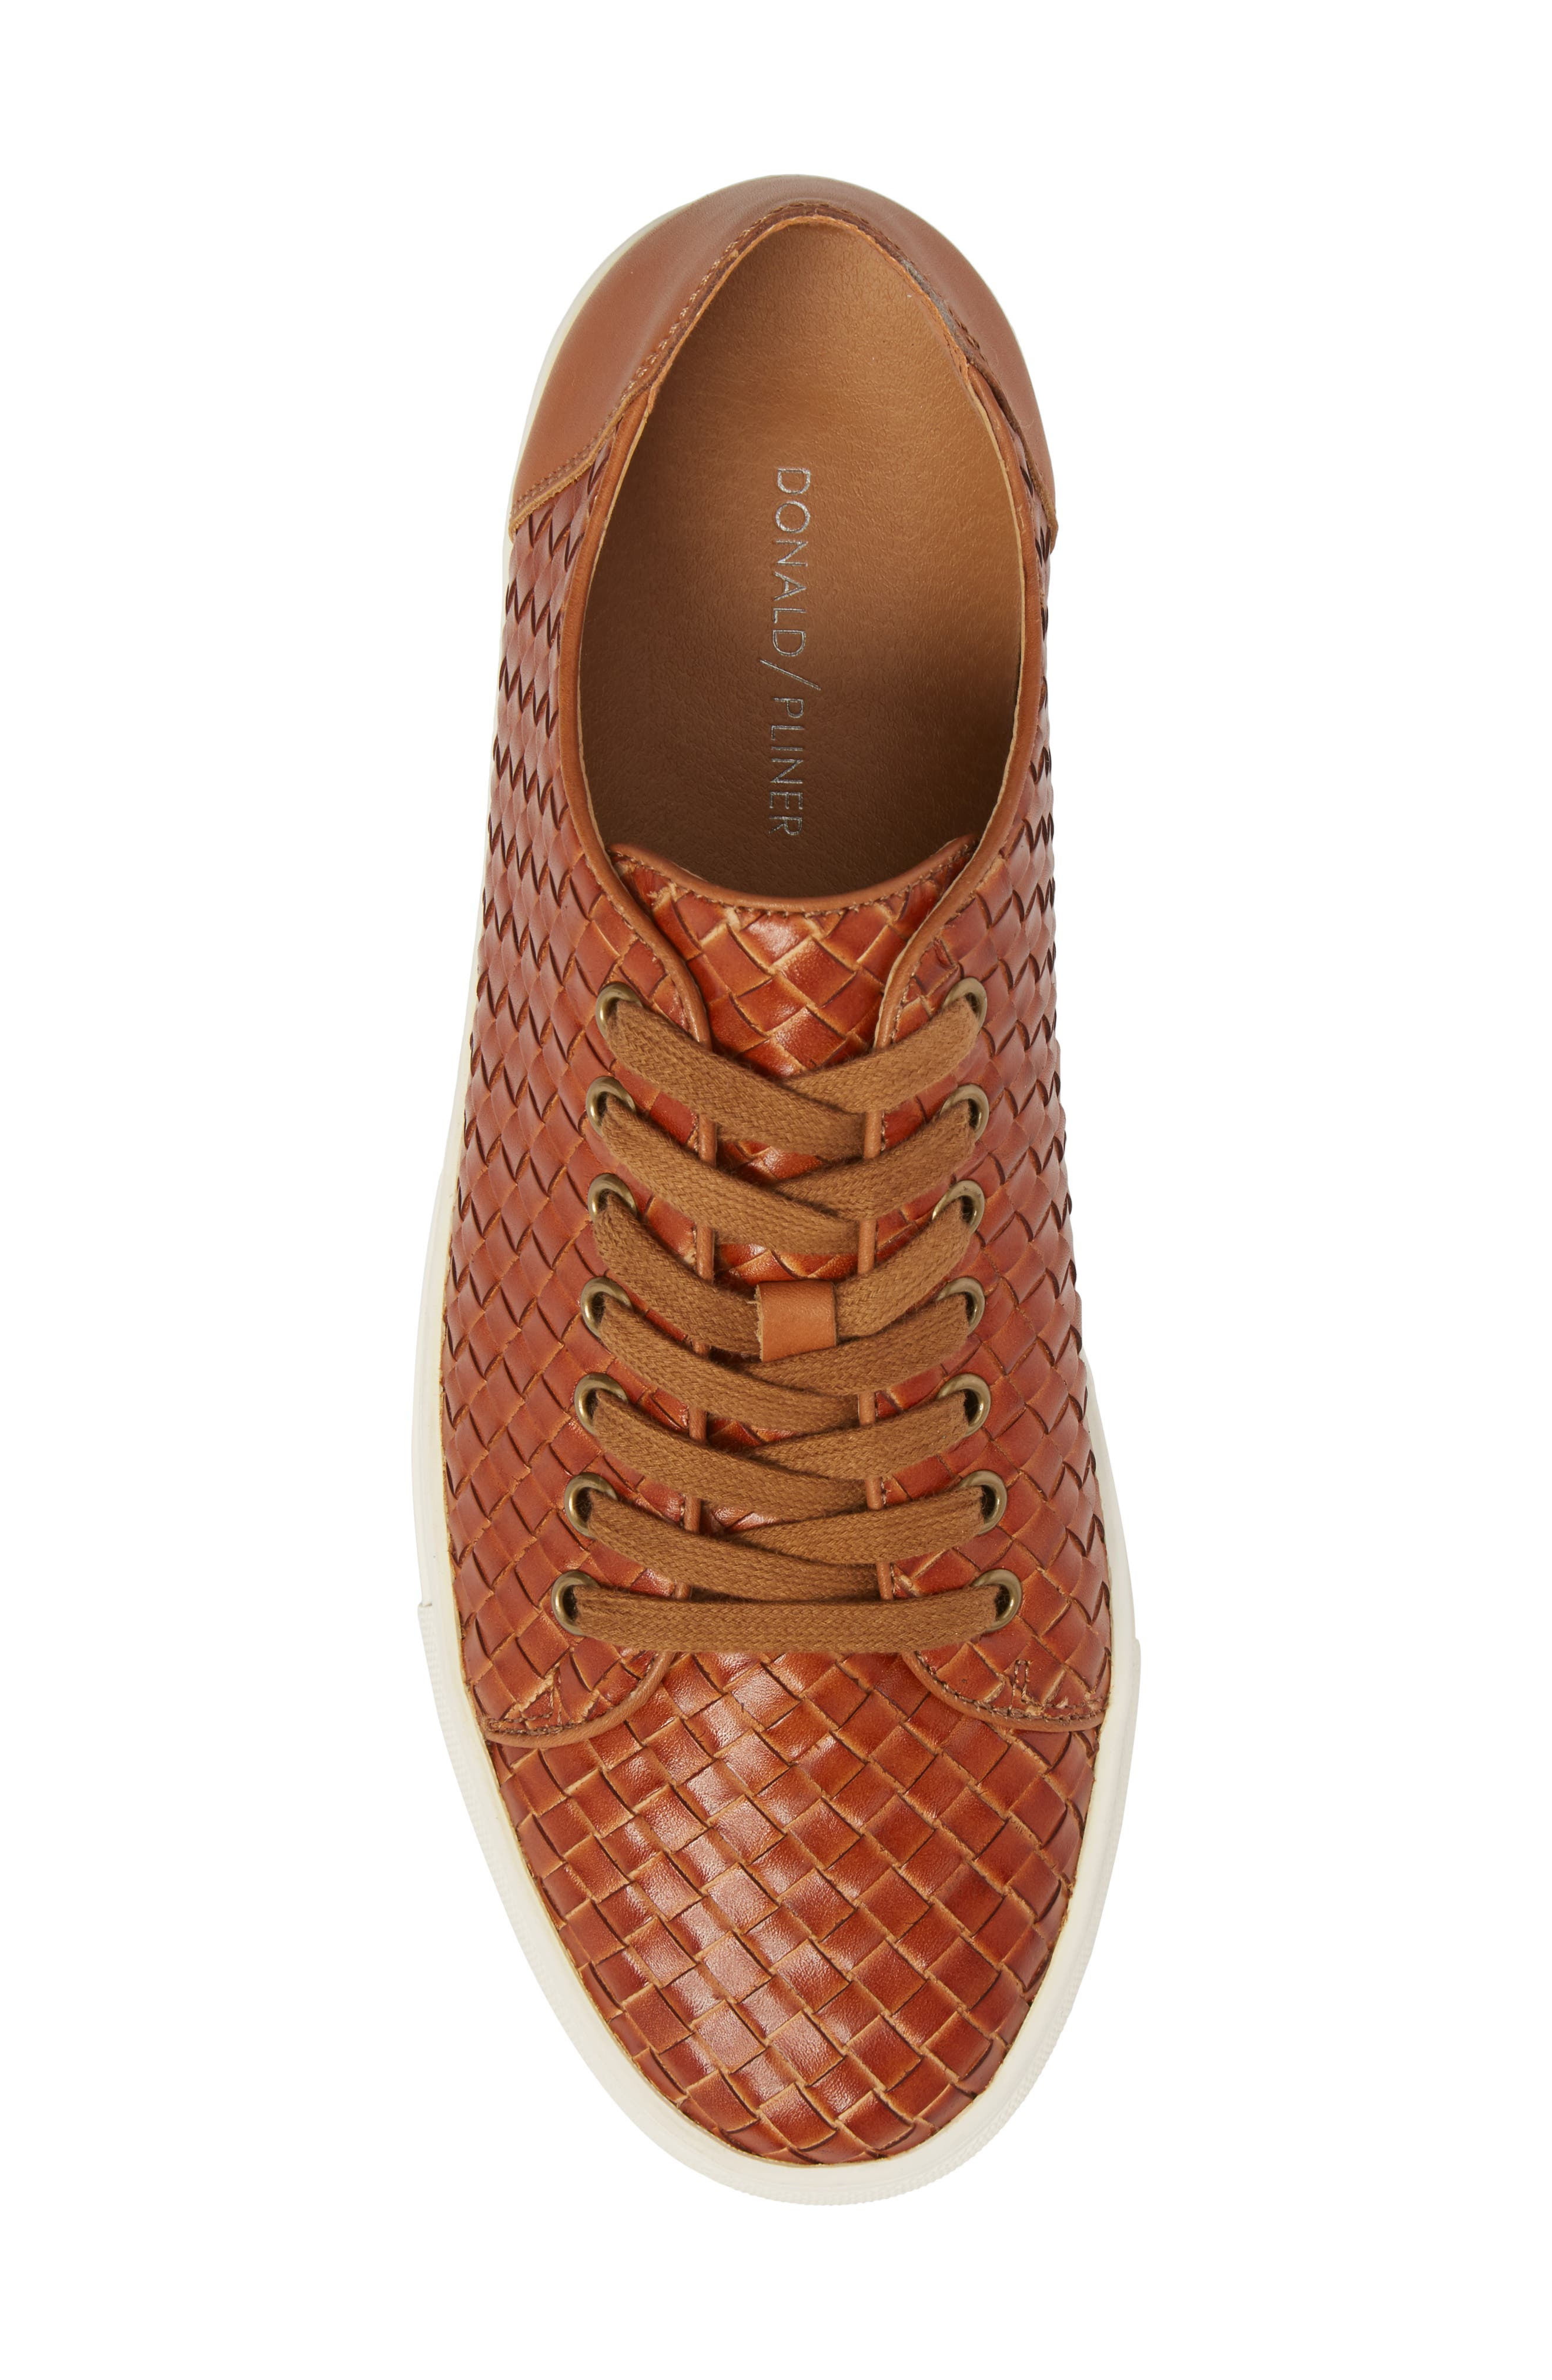 Alto Woven Low Top Sneaker,                             Alternate thumbnail 5, color,                             Saddle Leather